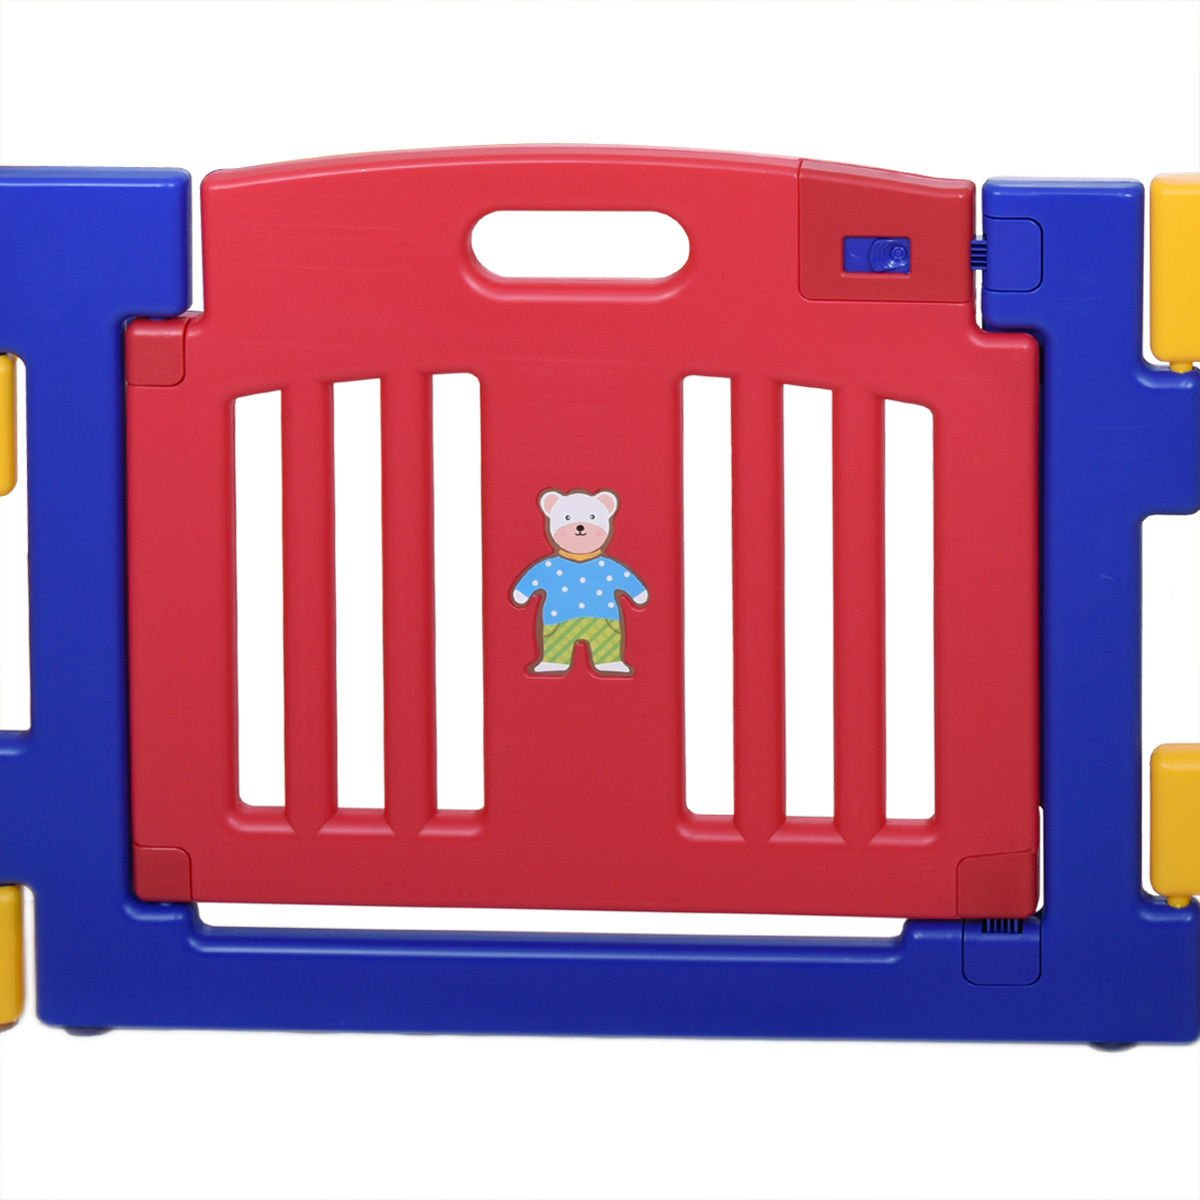 New 8 Panel Safety Play Center Baby Playpen Kids Yard Home Indoor Outdoor Pen by Eade shop (Image #5)